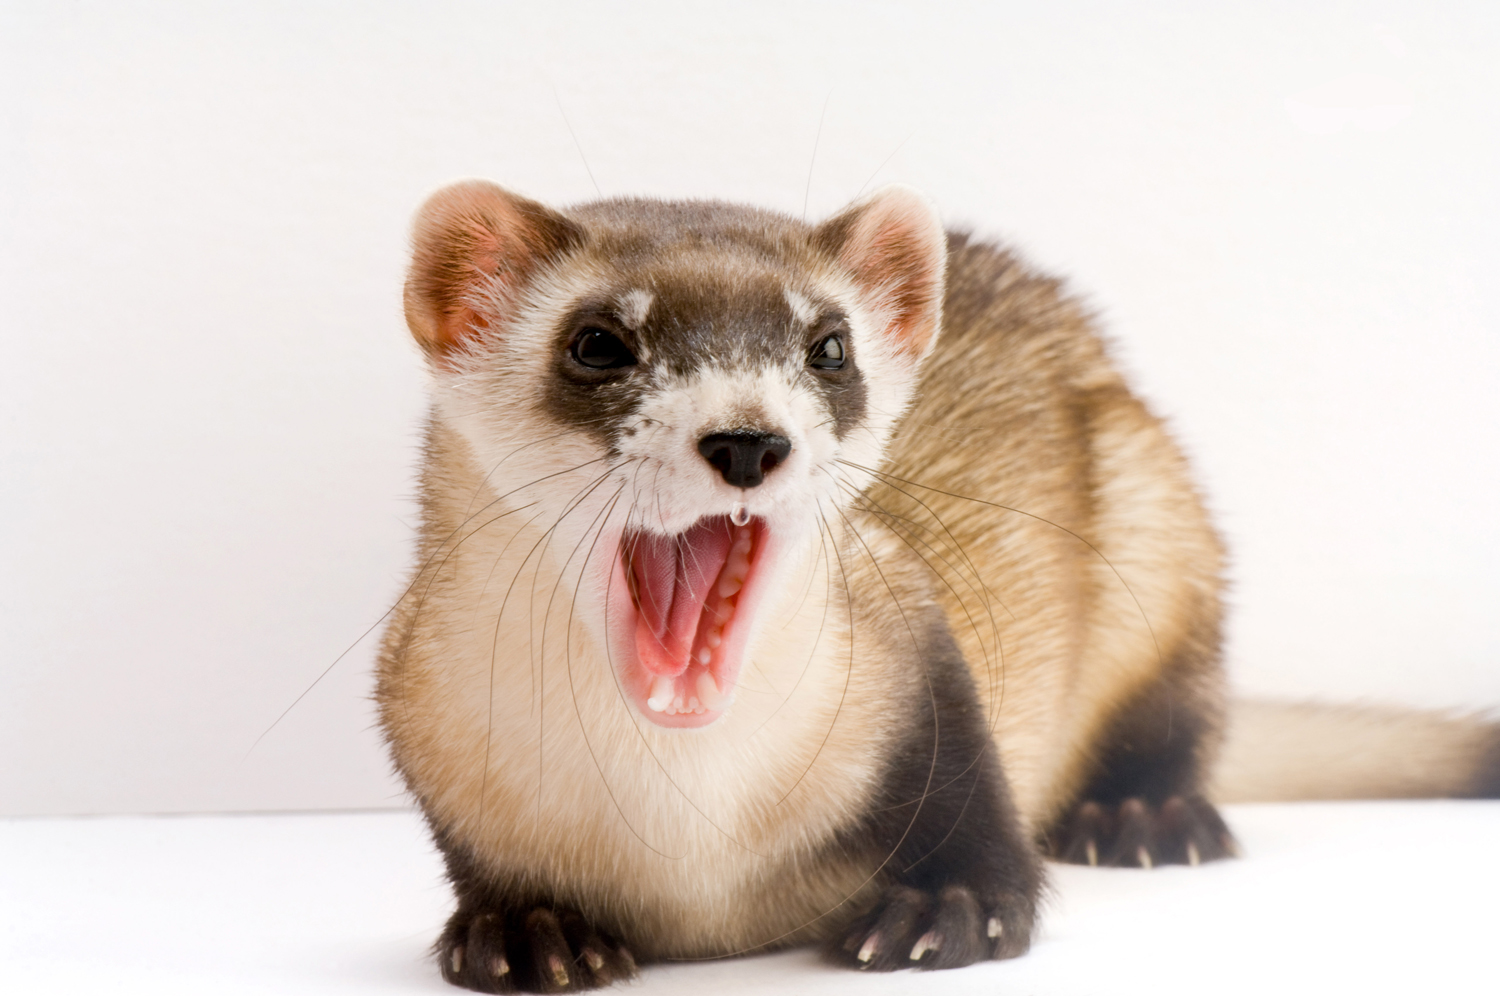 an introduction to the ferrets and their endangerment In 1987, the us black-footed ferret population was near extinction with only 18 individual animals left after captive breeding and conservation efforts, there are now 300 of the creatures alive, but the efforts to save the species have a major pitfall: these hundreds of ferrets are all half siblings, and their prospect of continued survival isn't particularly great.